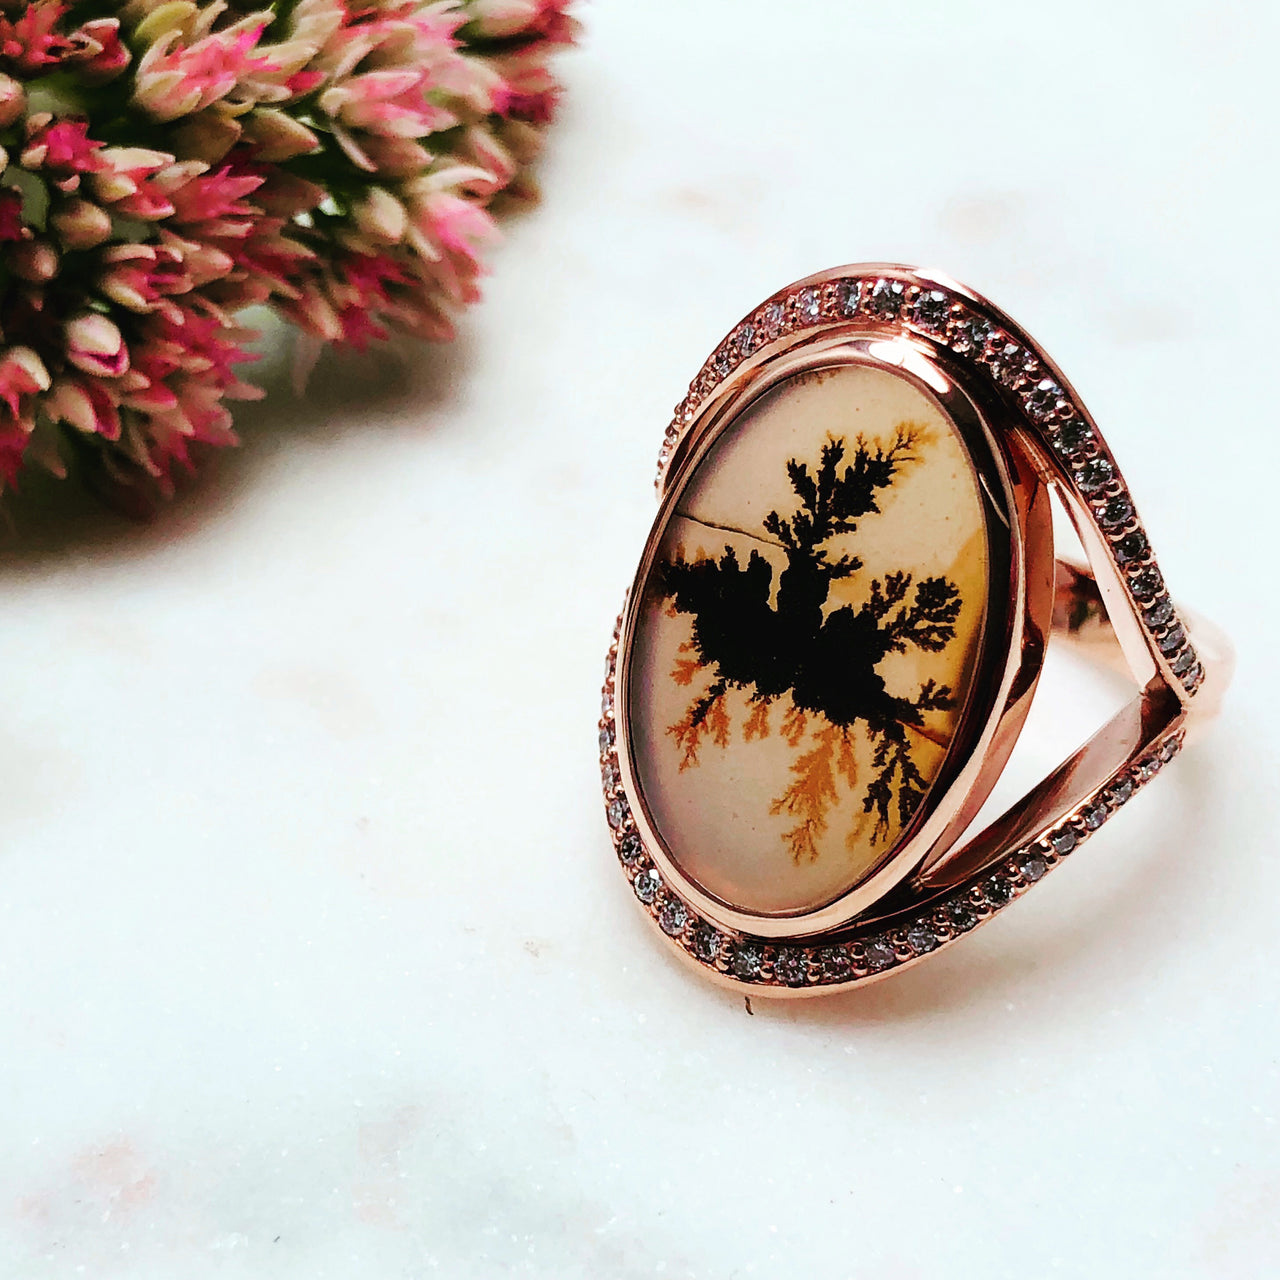 14K Rose Gold Dendritic Agate and Diamond Ring.